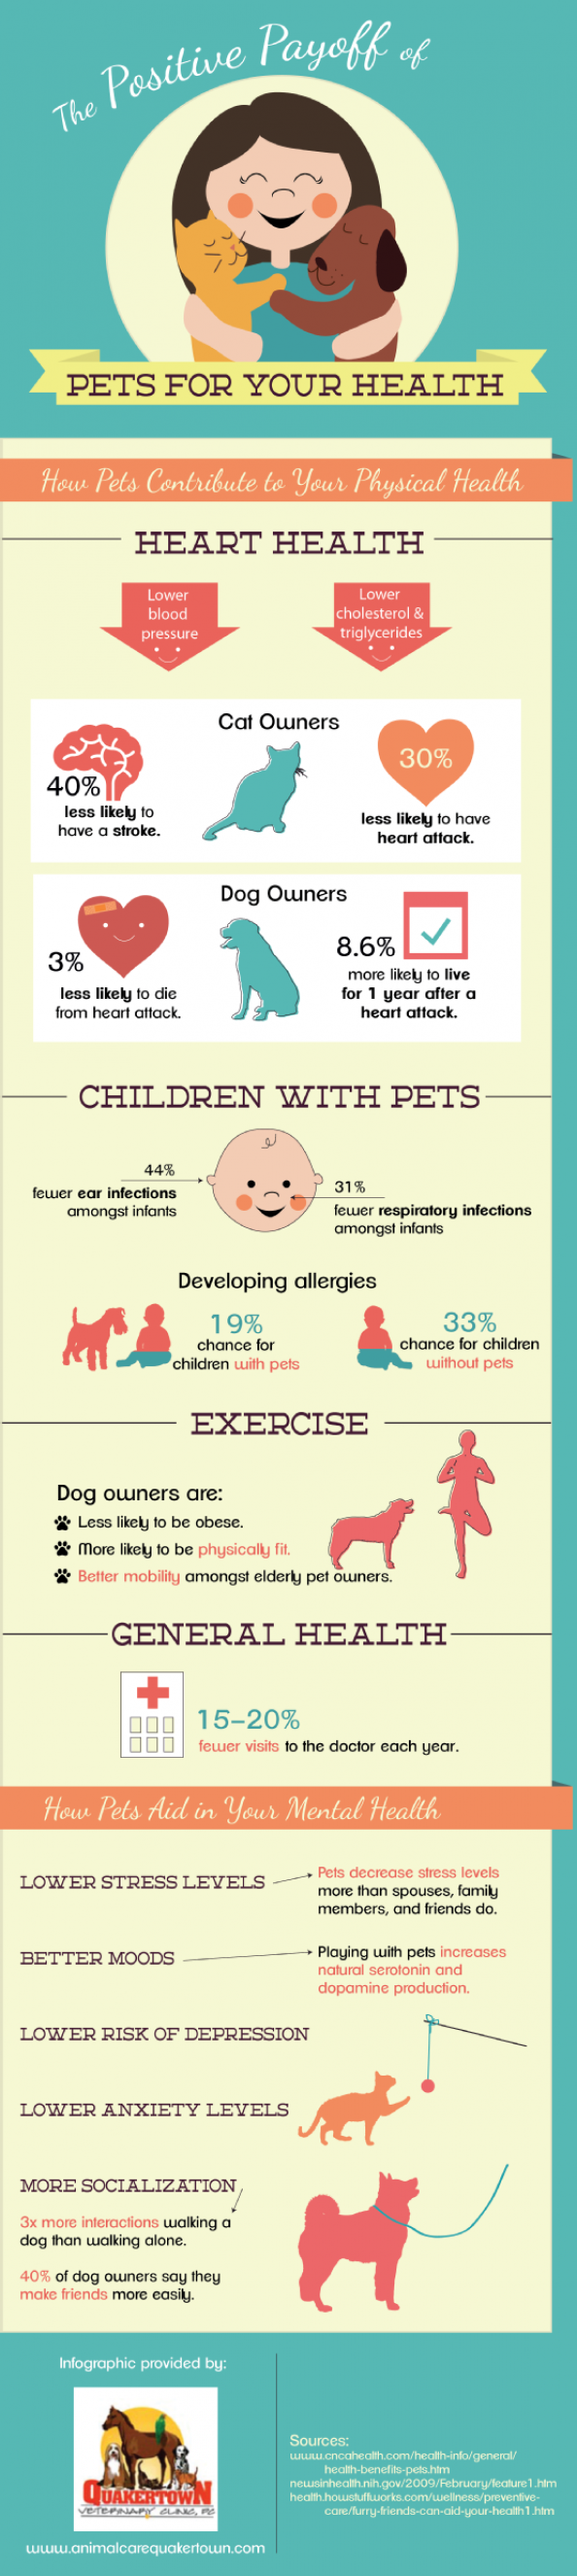 The Positive Payoff of Pets for Your Health Infographic